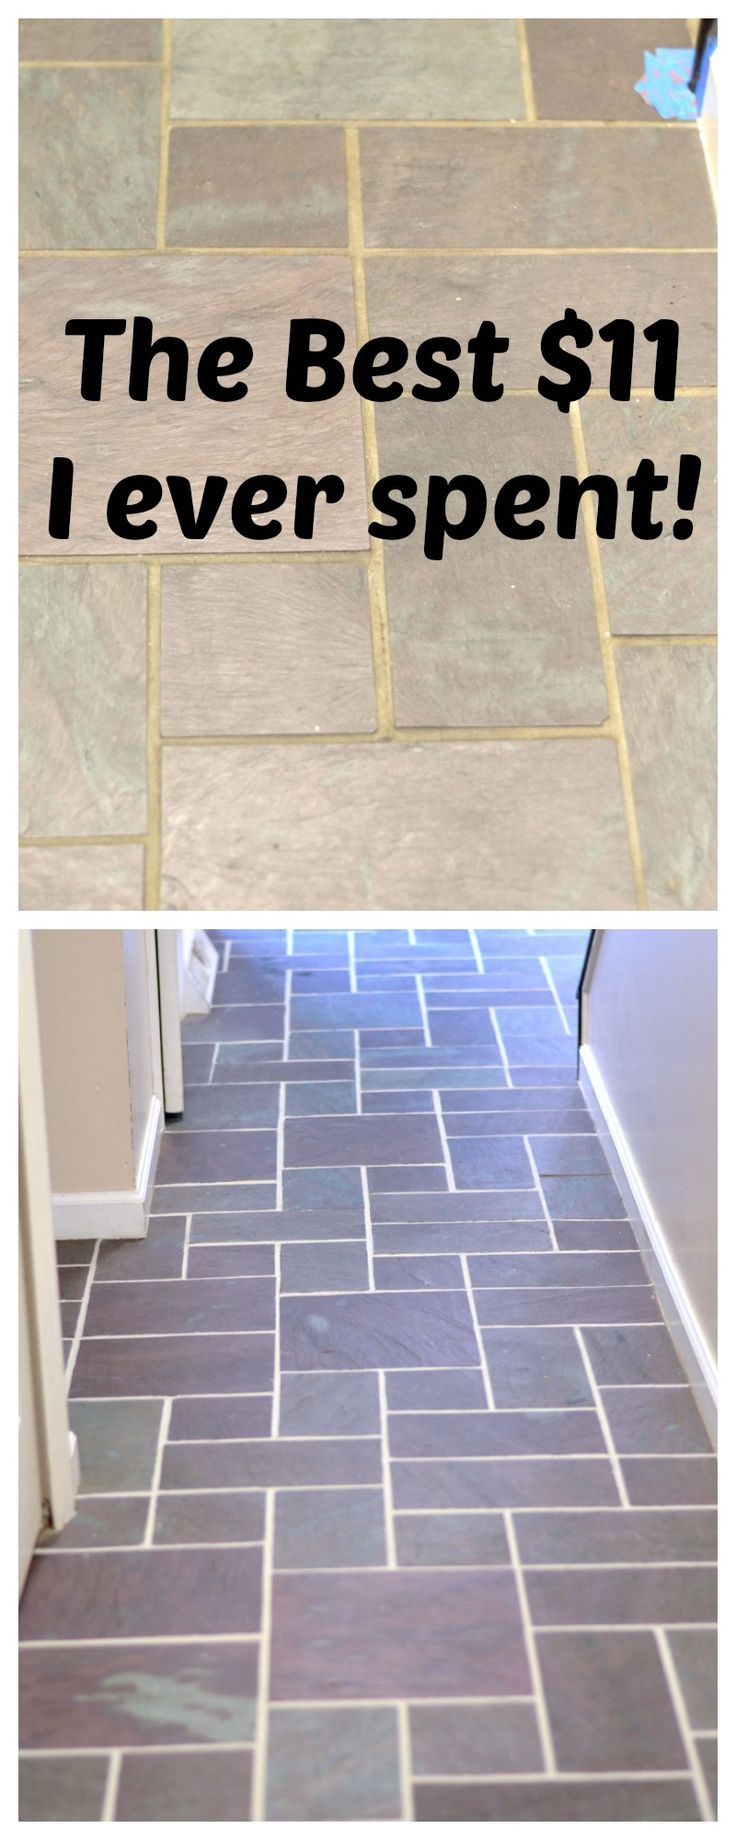 Kitchen Floor Grout Cleaner 17 Best Ideas About How To Seal Grout On Pinterest Sealing Grout